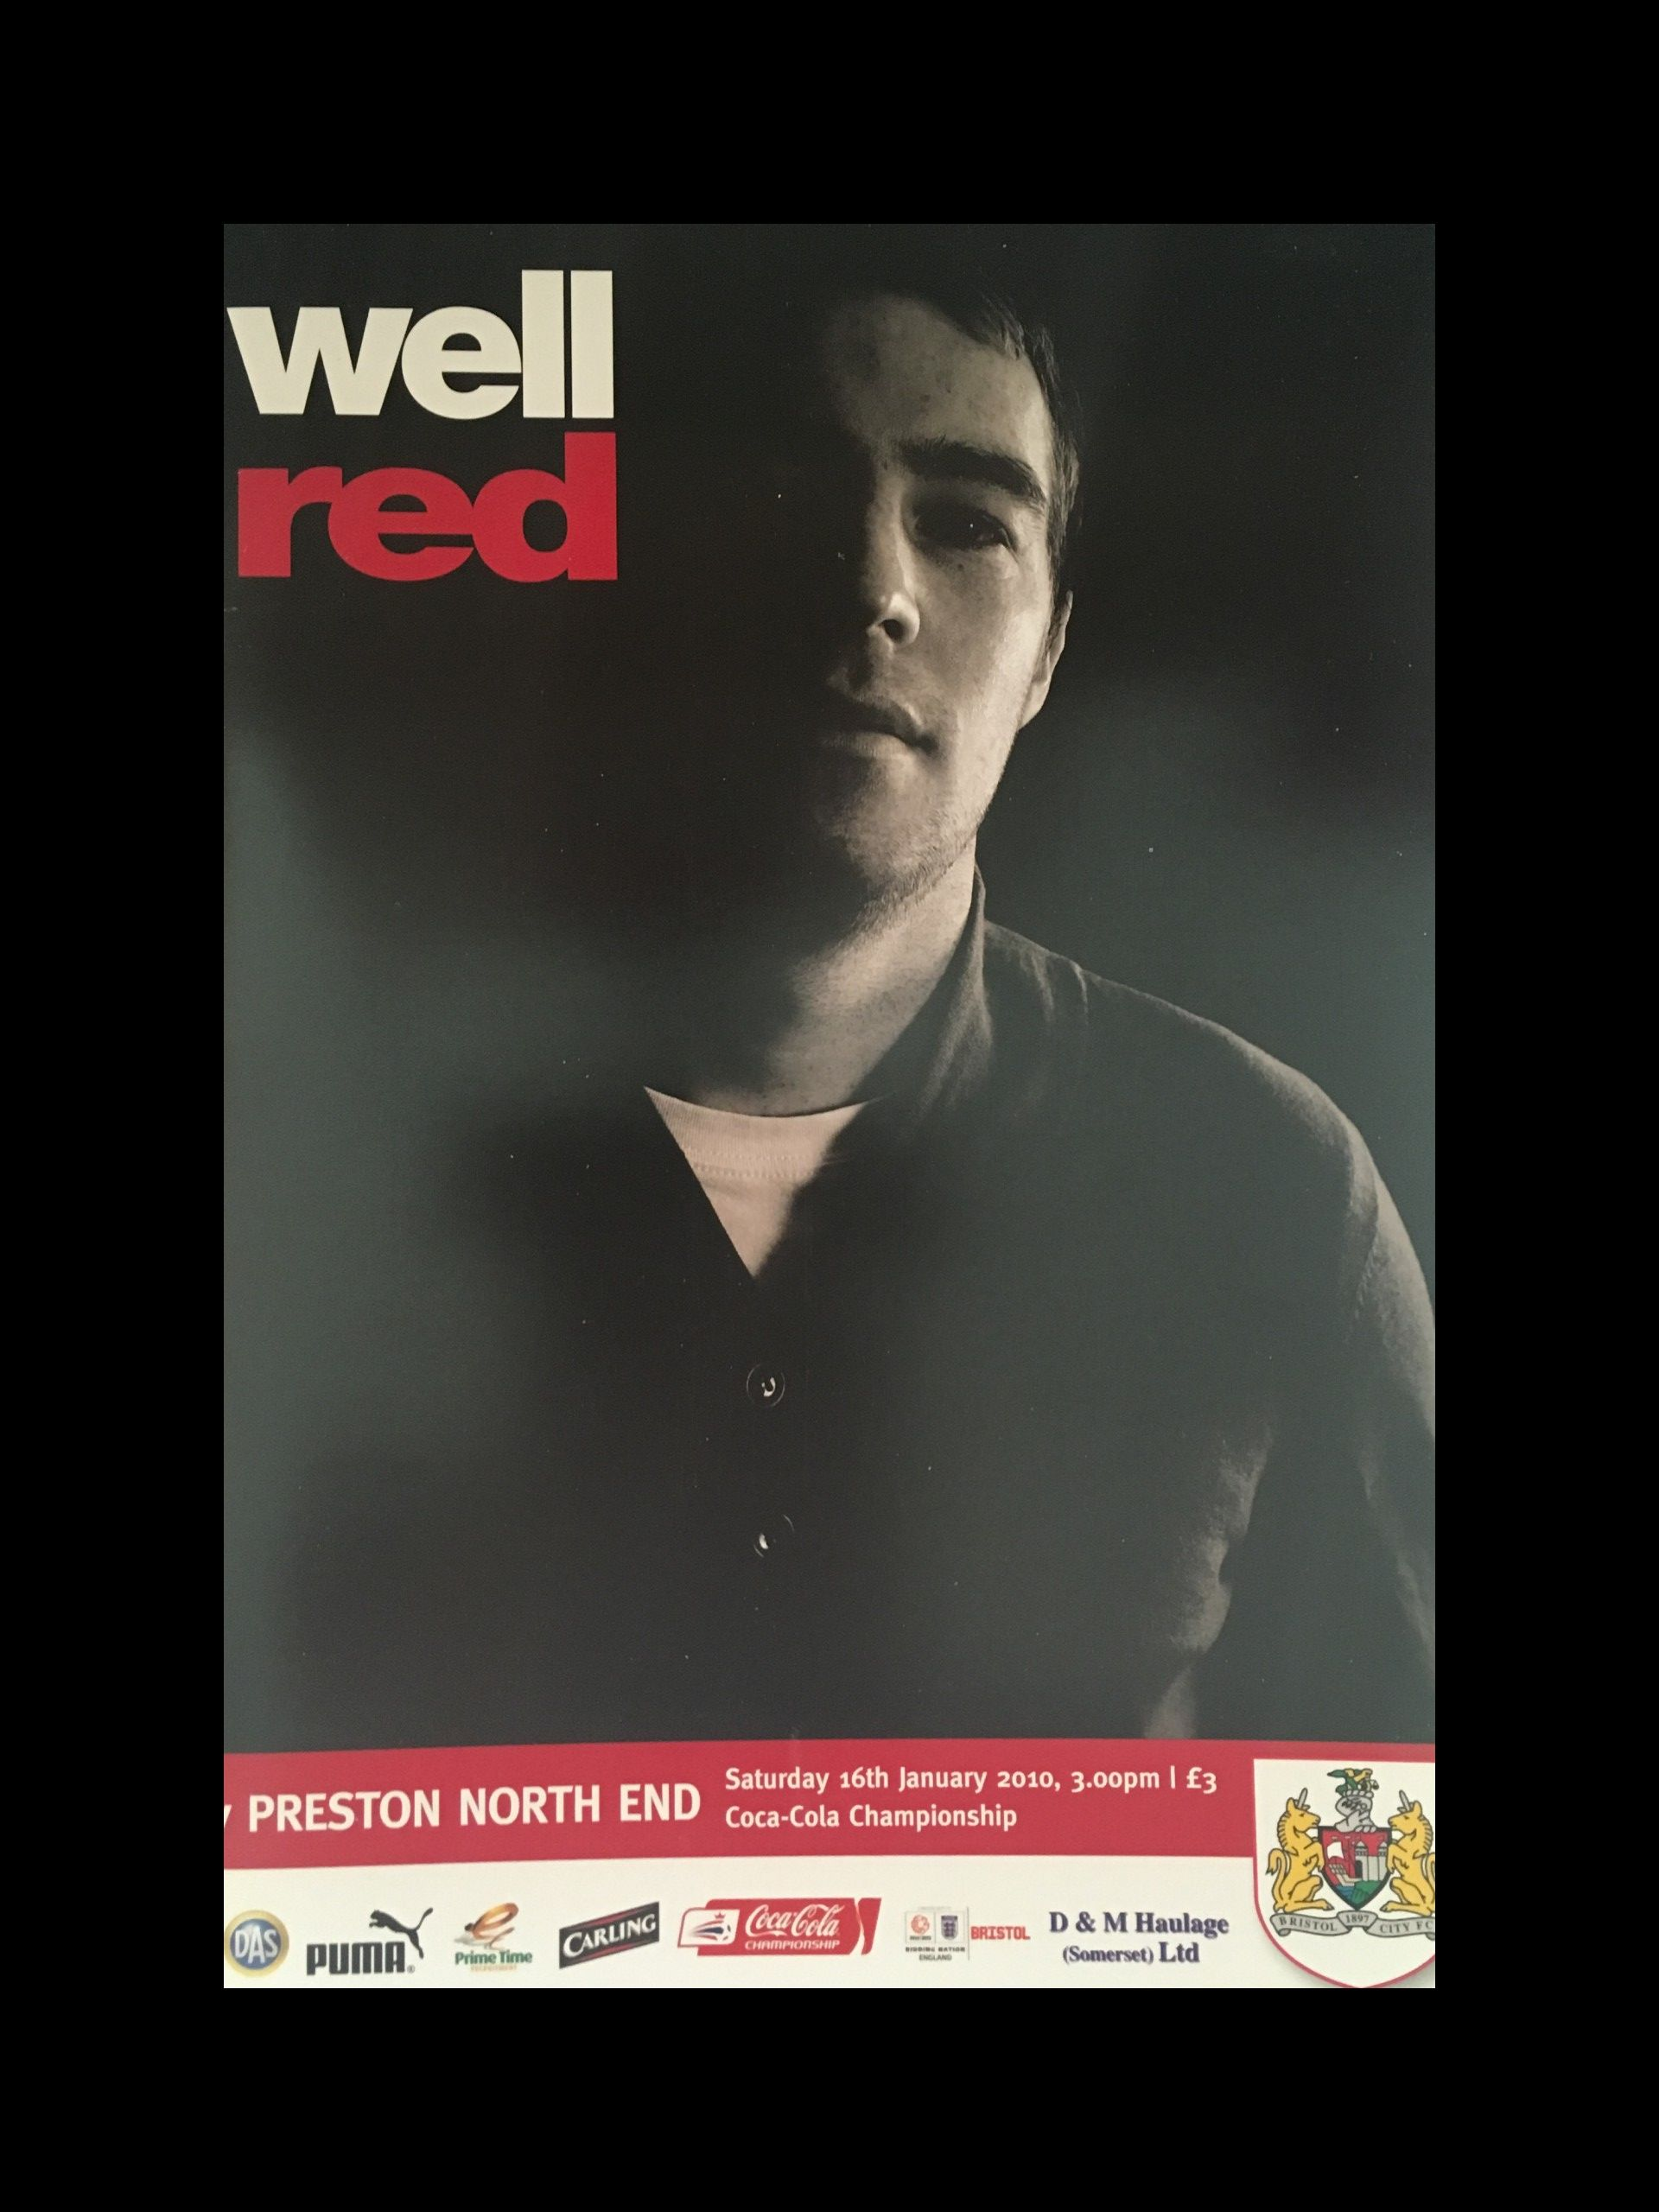 Bristol City v Preston North End 16-01-2010 Programme